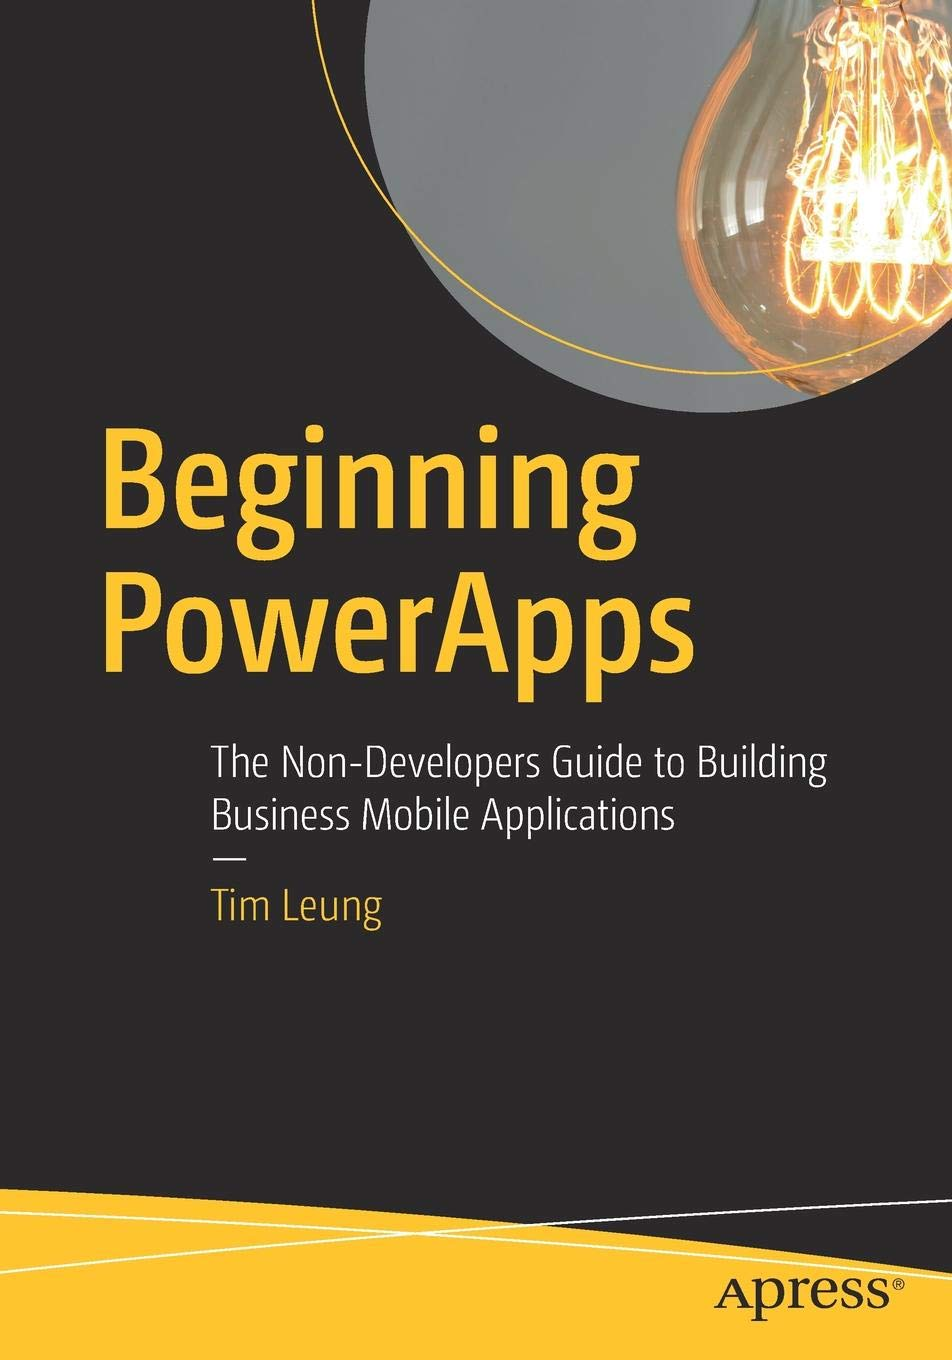 Beginning PowerApps: The Non-Developers Guide to Building